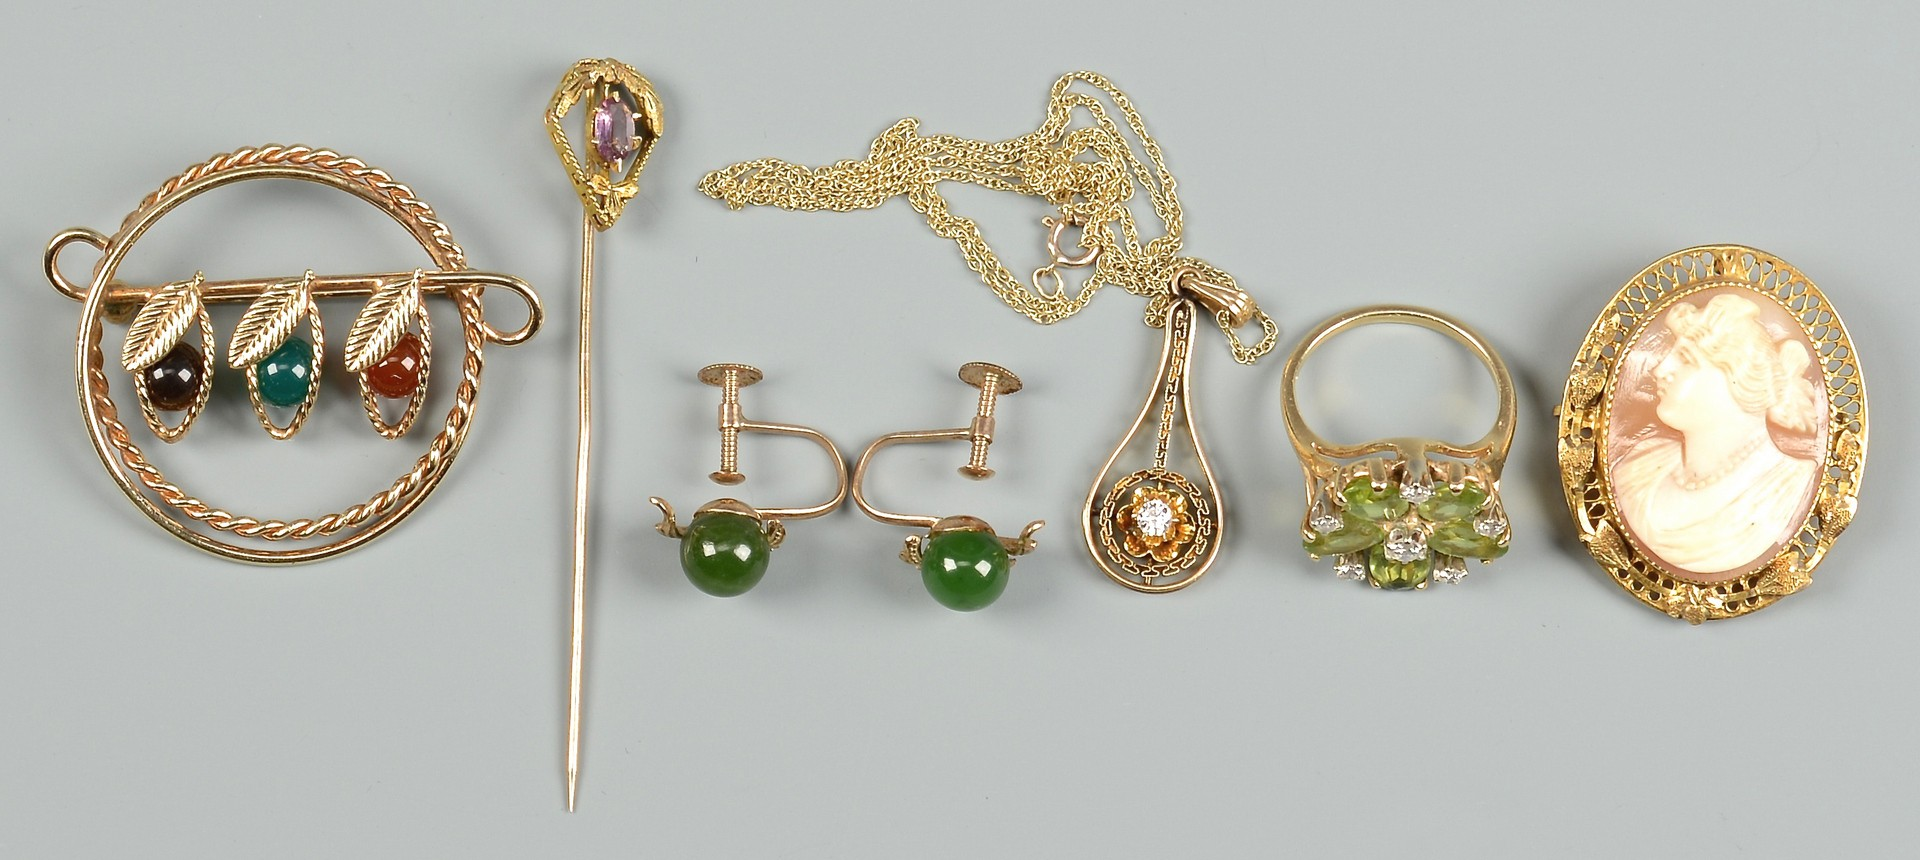 Lot 800: Misc. Vintage Jewelry, 9 items